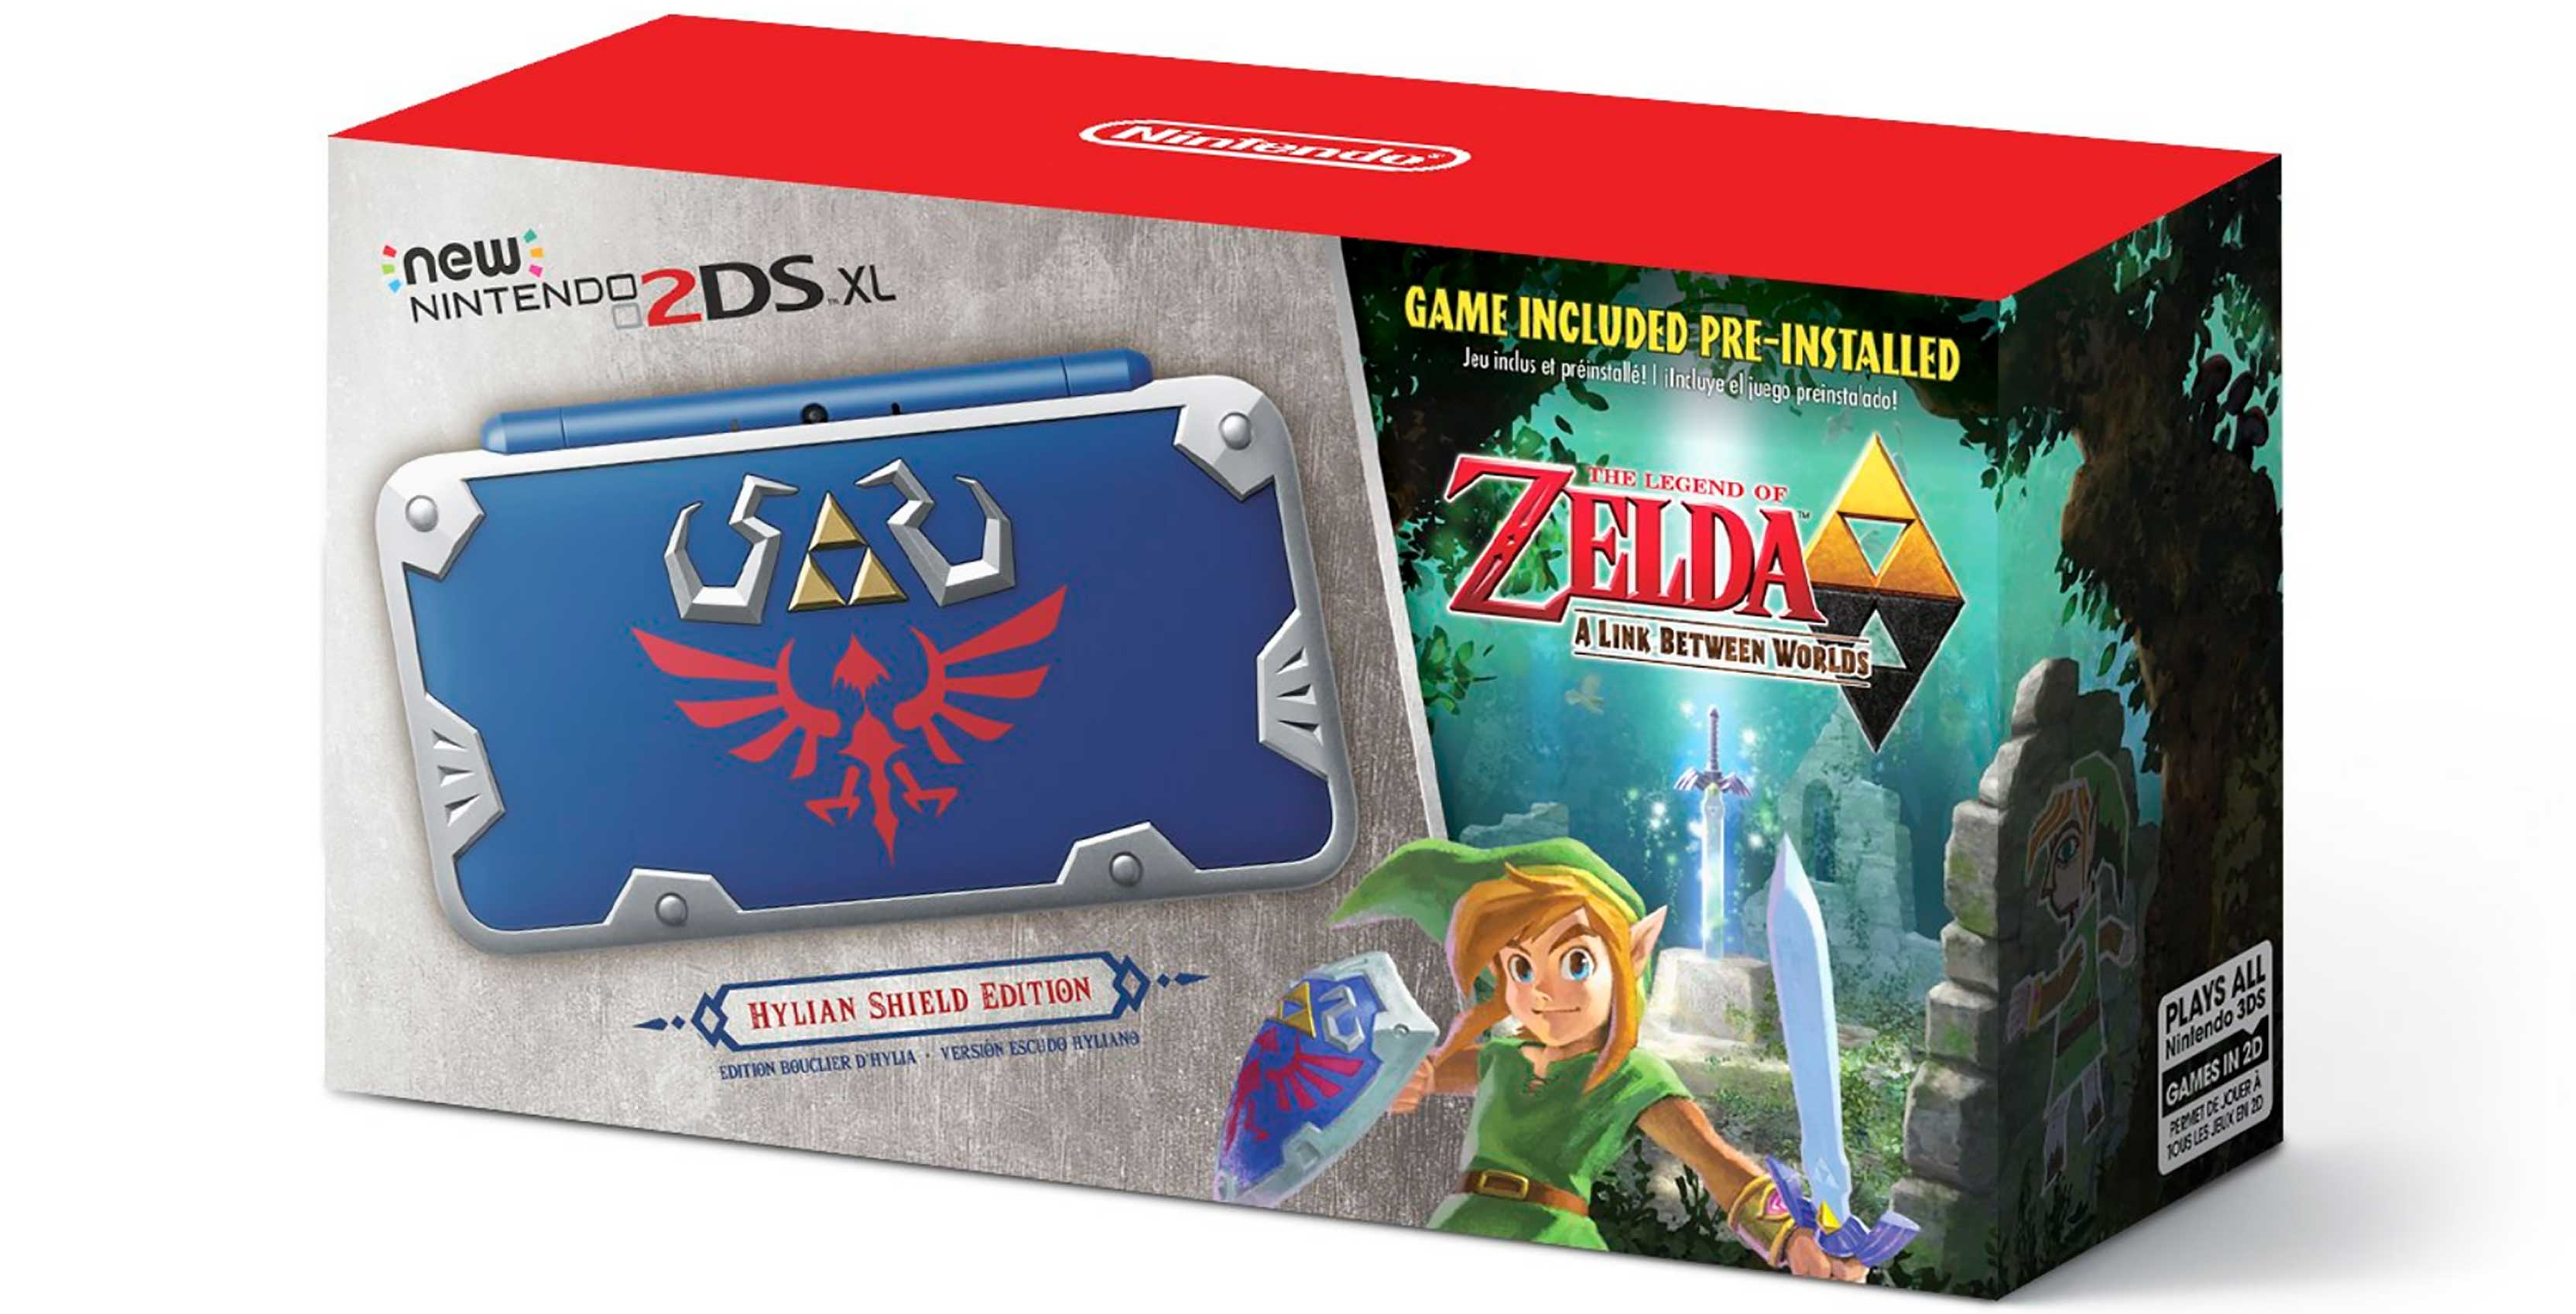 Zelda 2DS XL